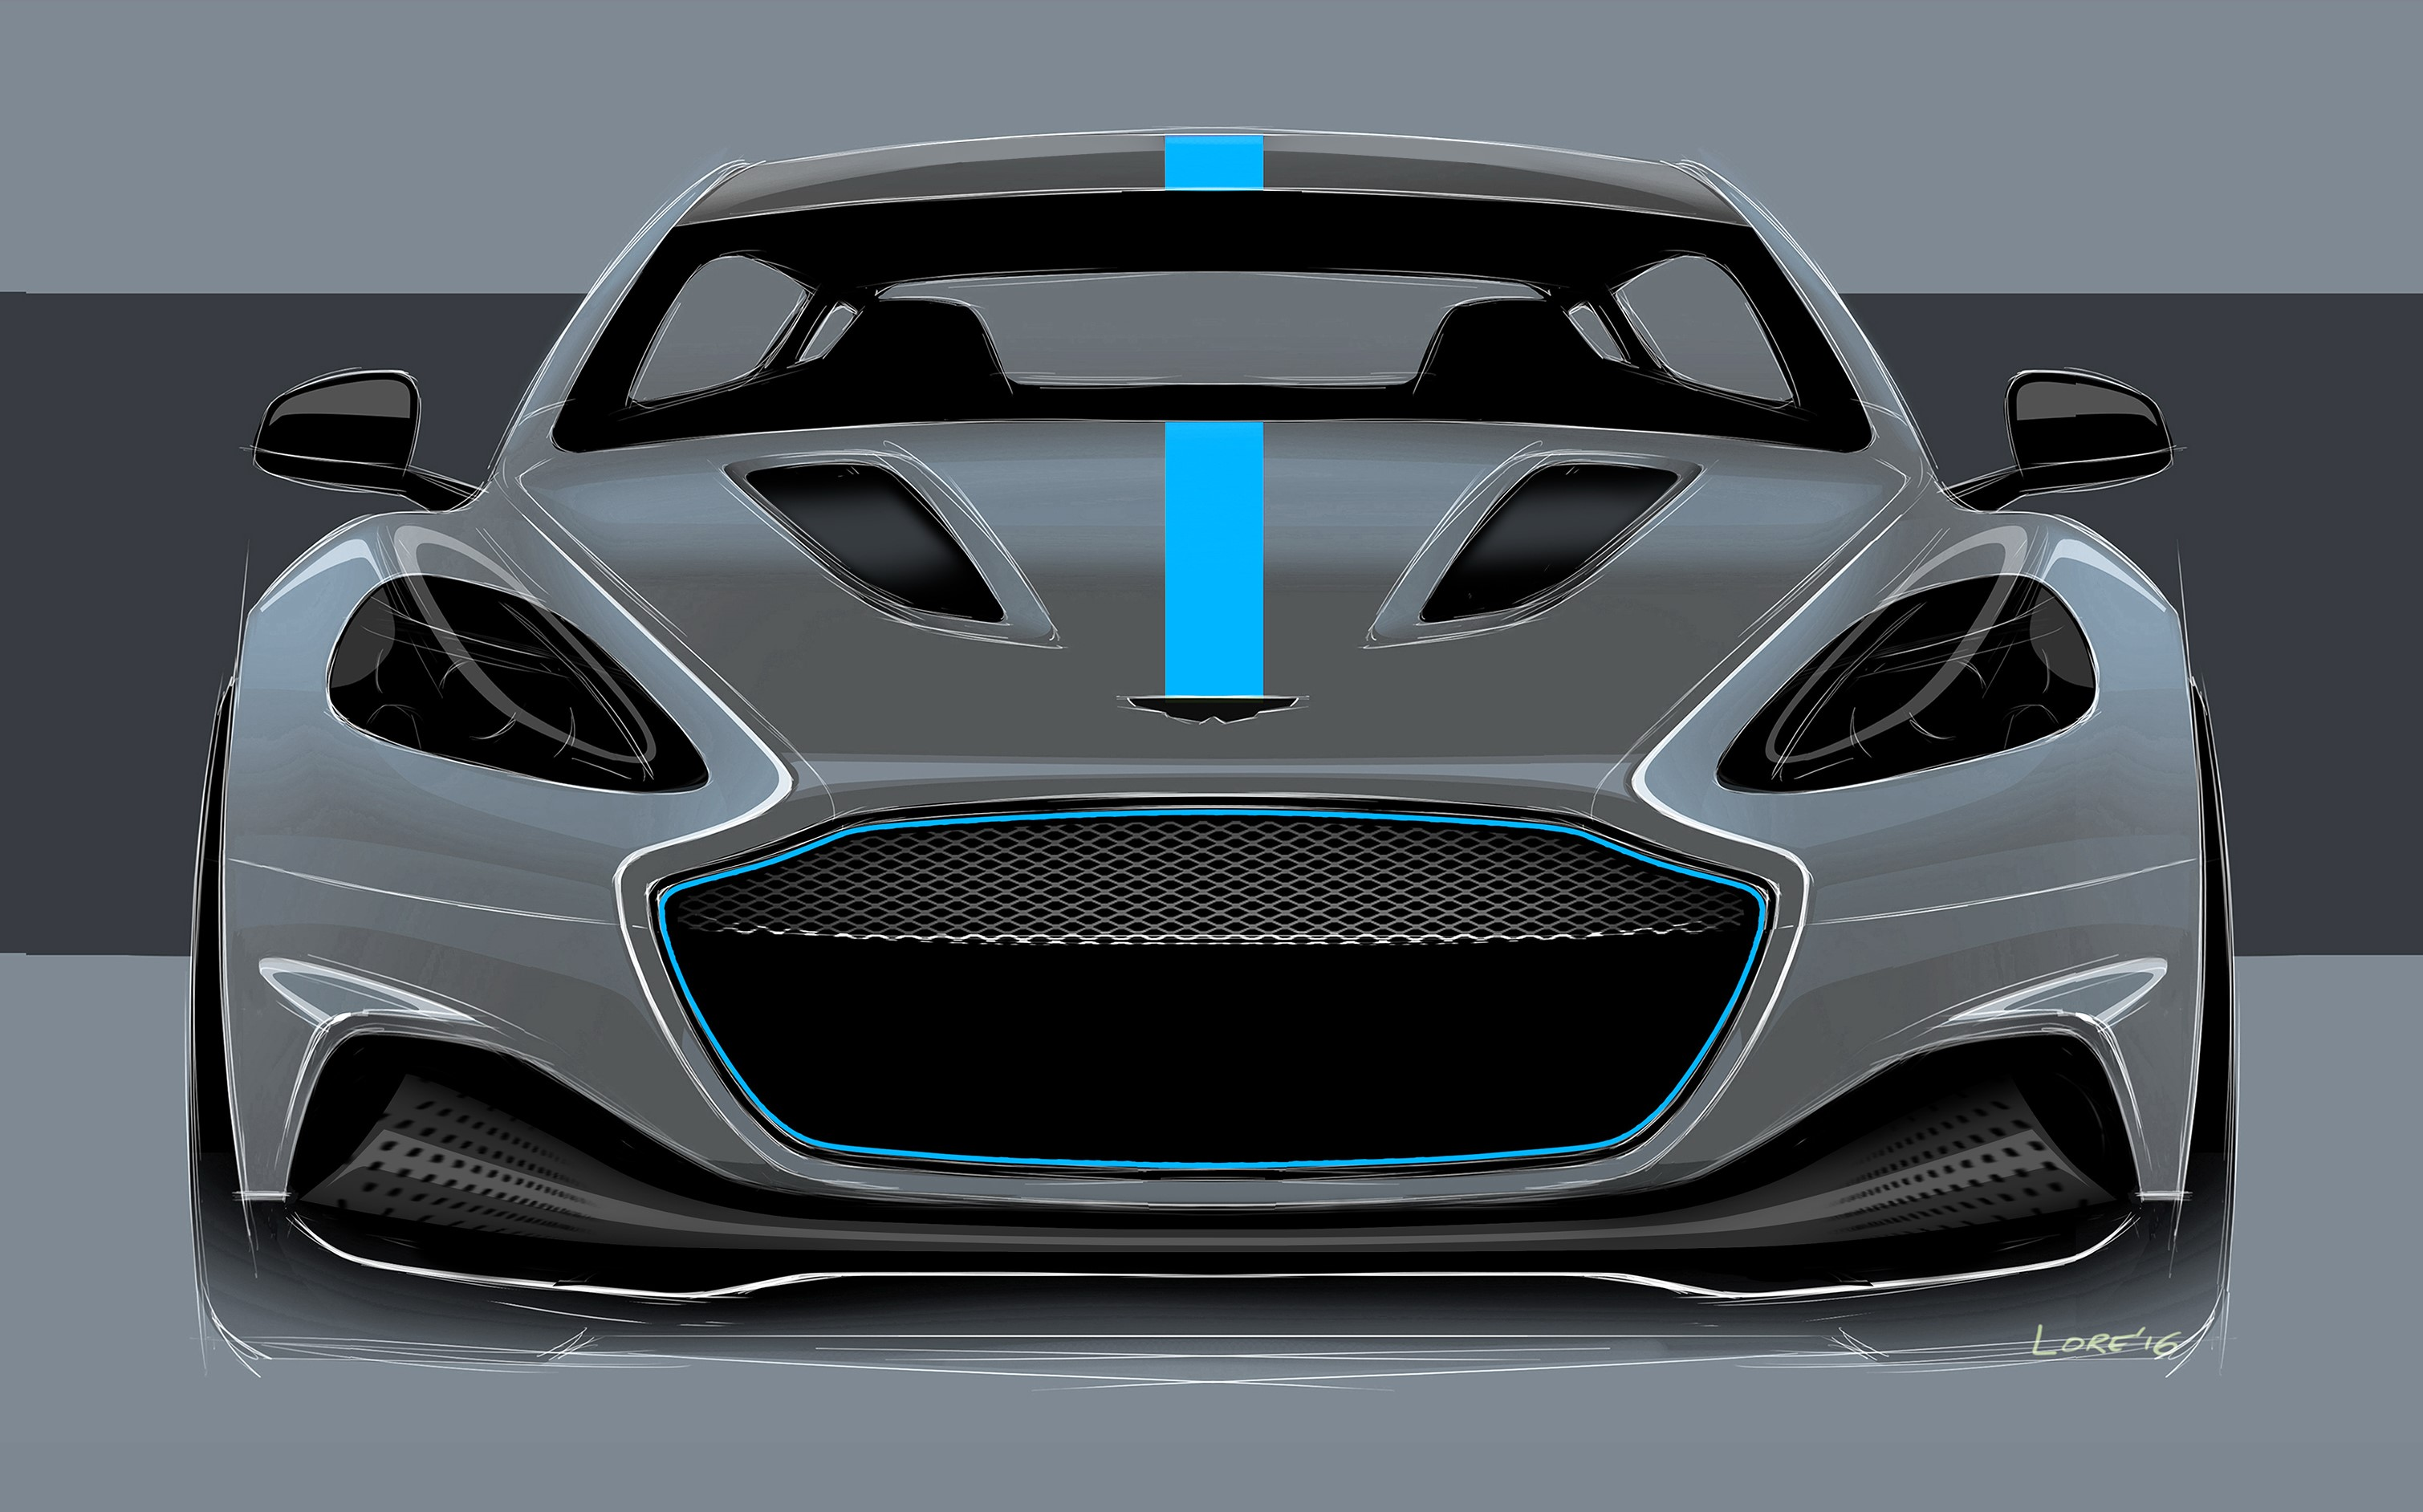 Aston Martin to Produce First All-electric Model